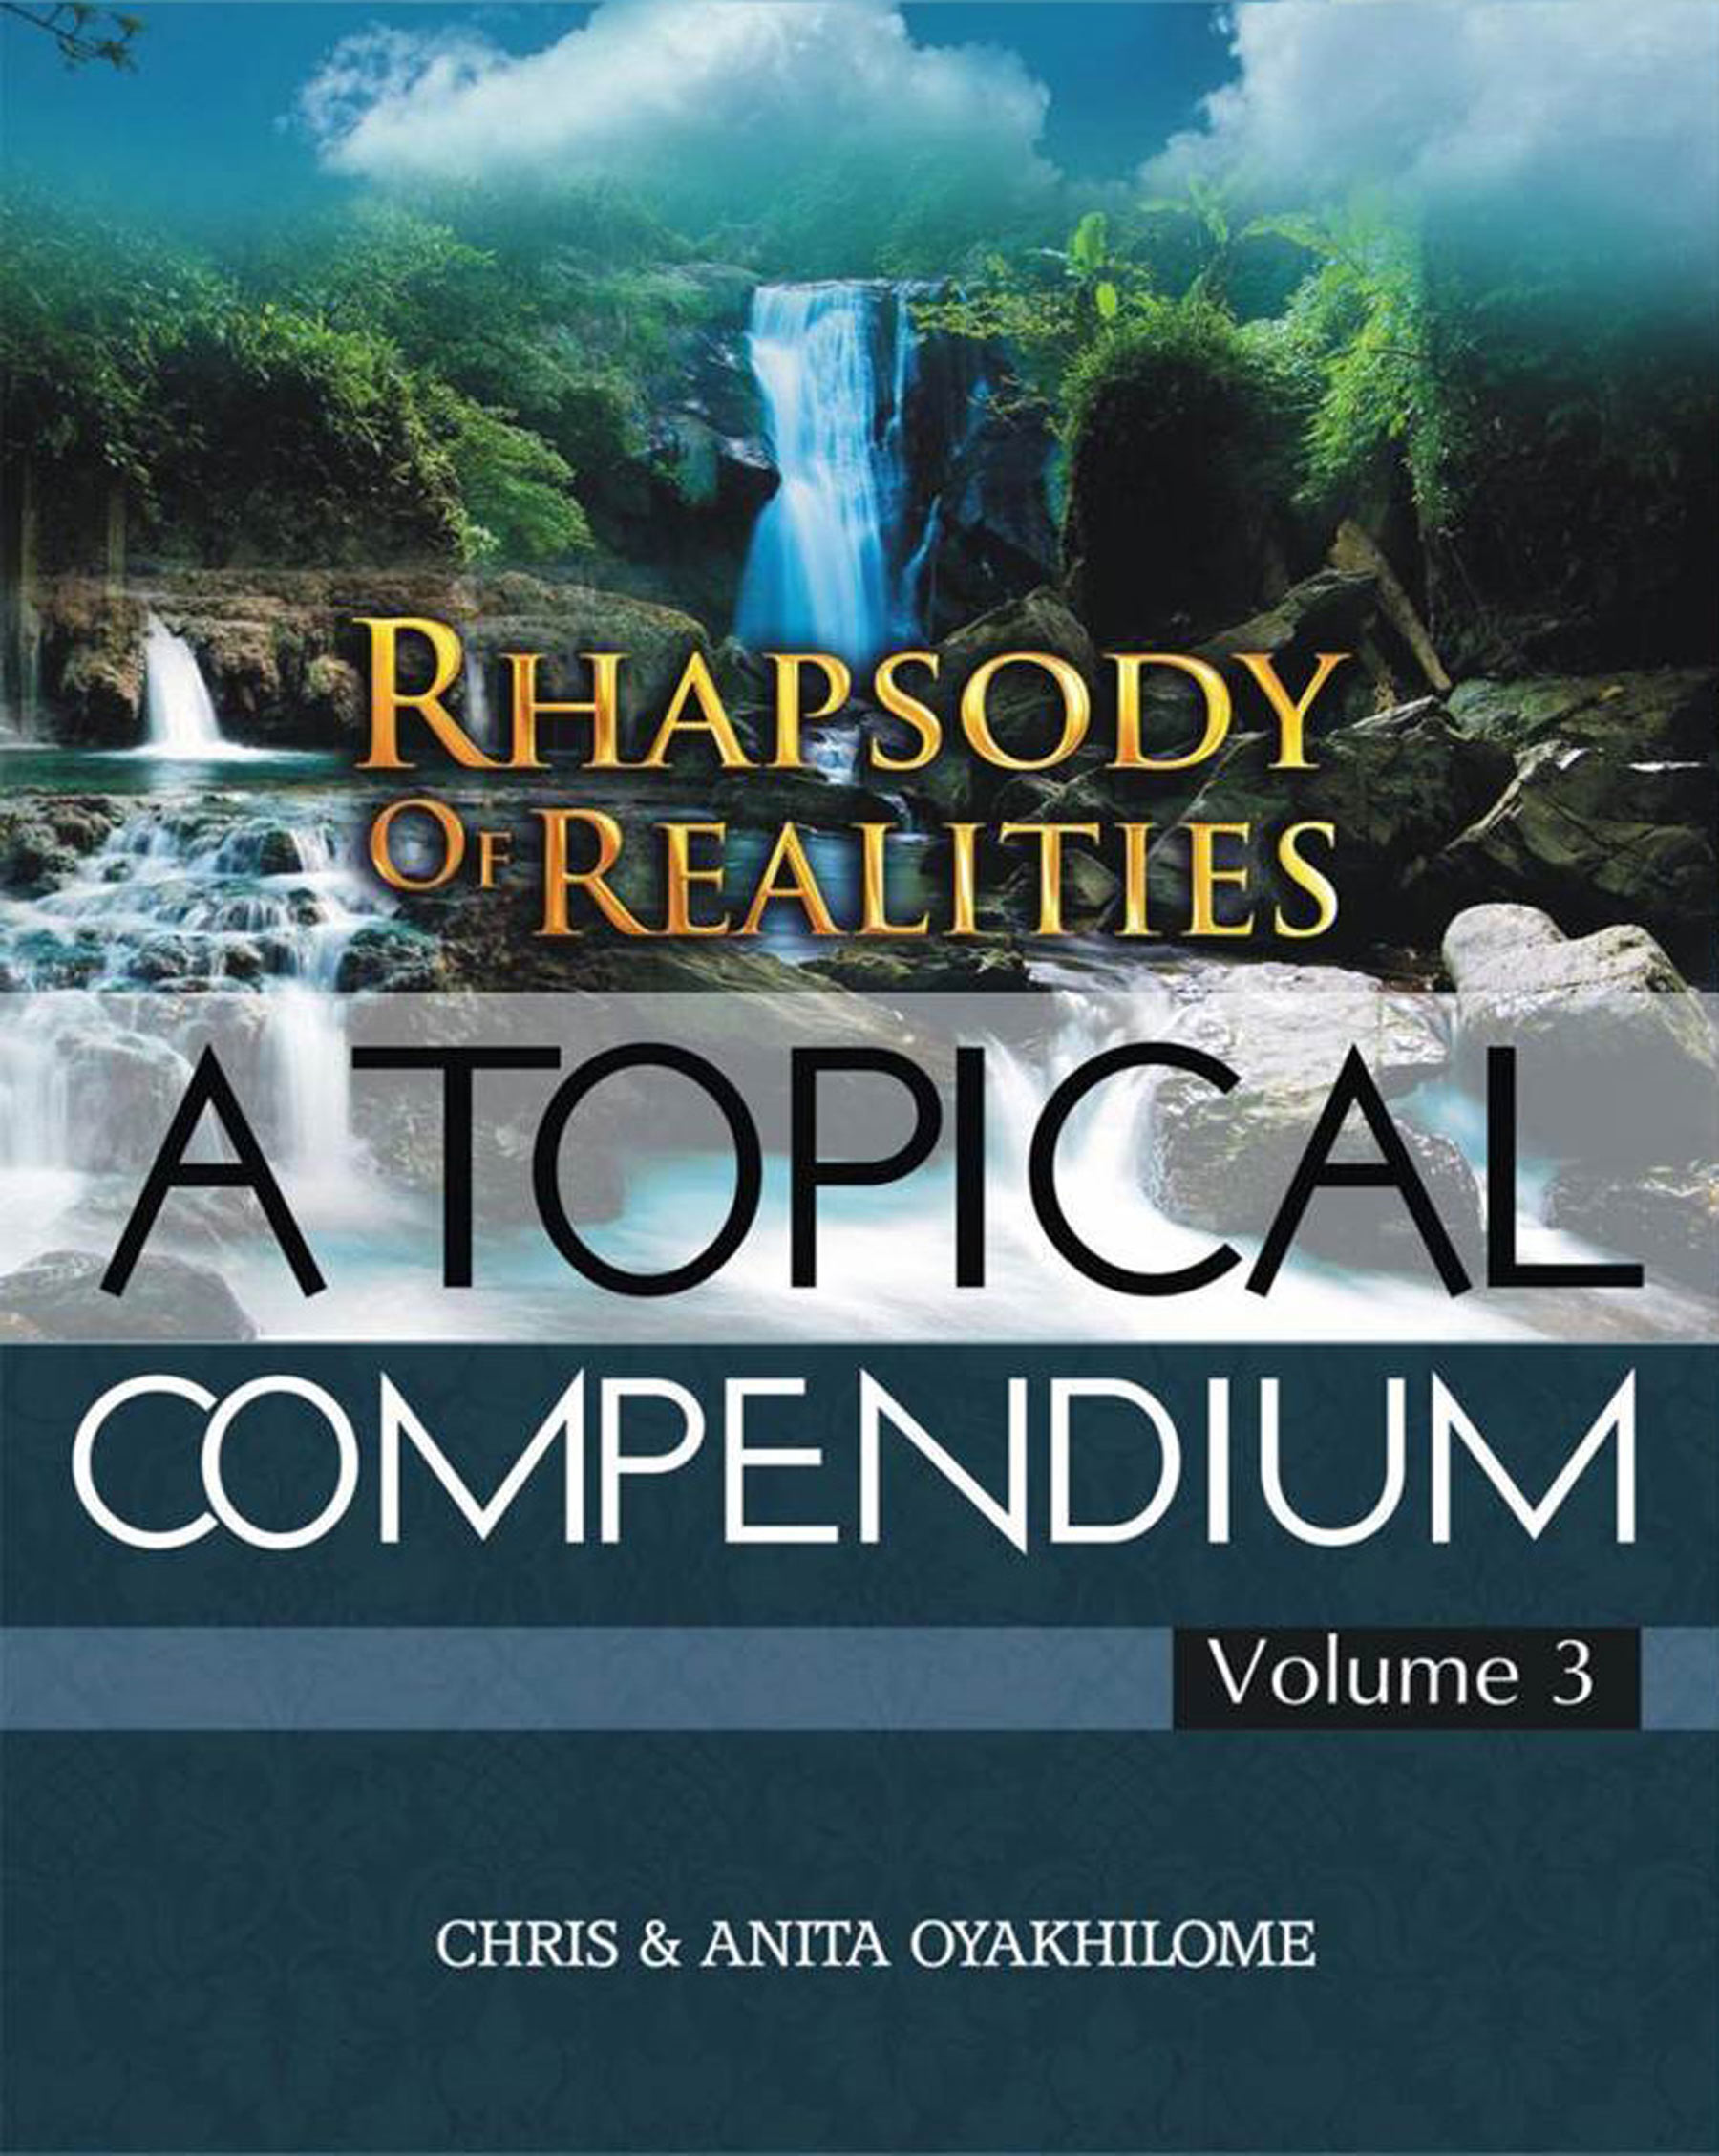 Pastor Chris and Anita Oyakhilome - Rhapsody of Realities Topical Compendium Volume 3